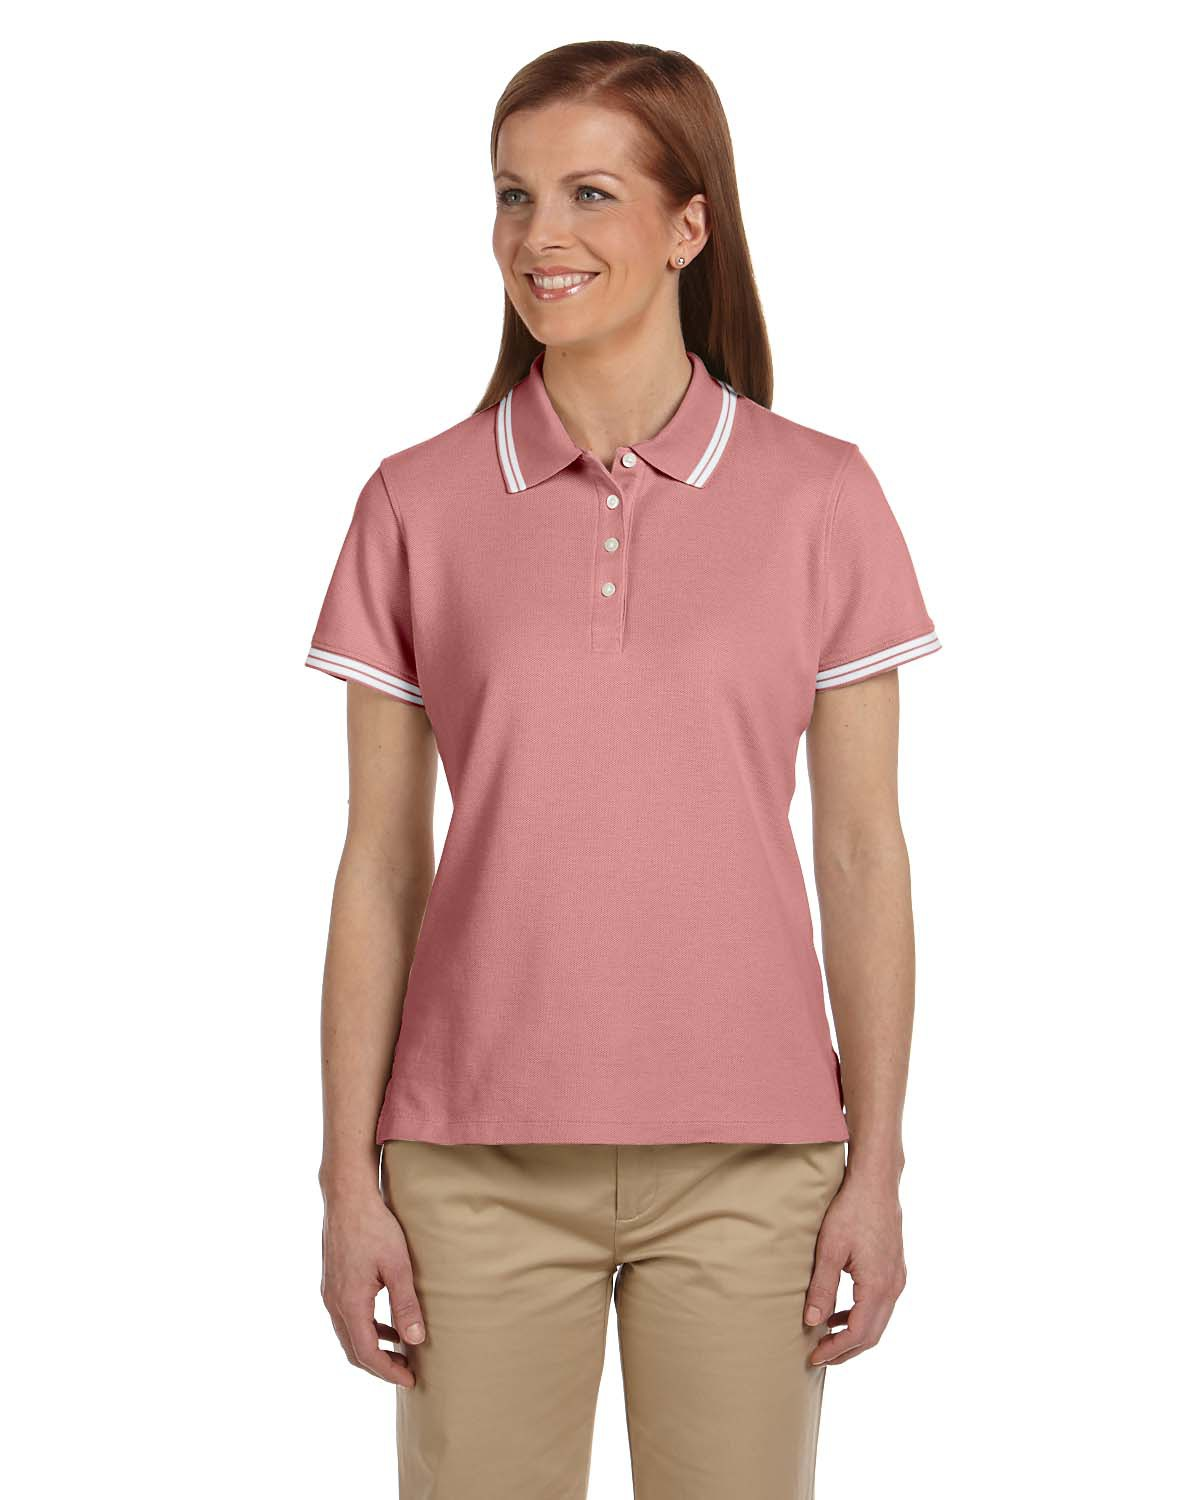 Chestnut Hill CH113W  Women's Tipped Performance Plus ...